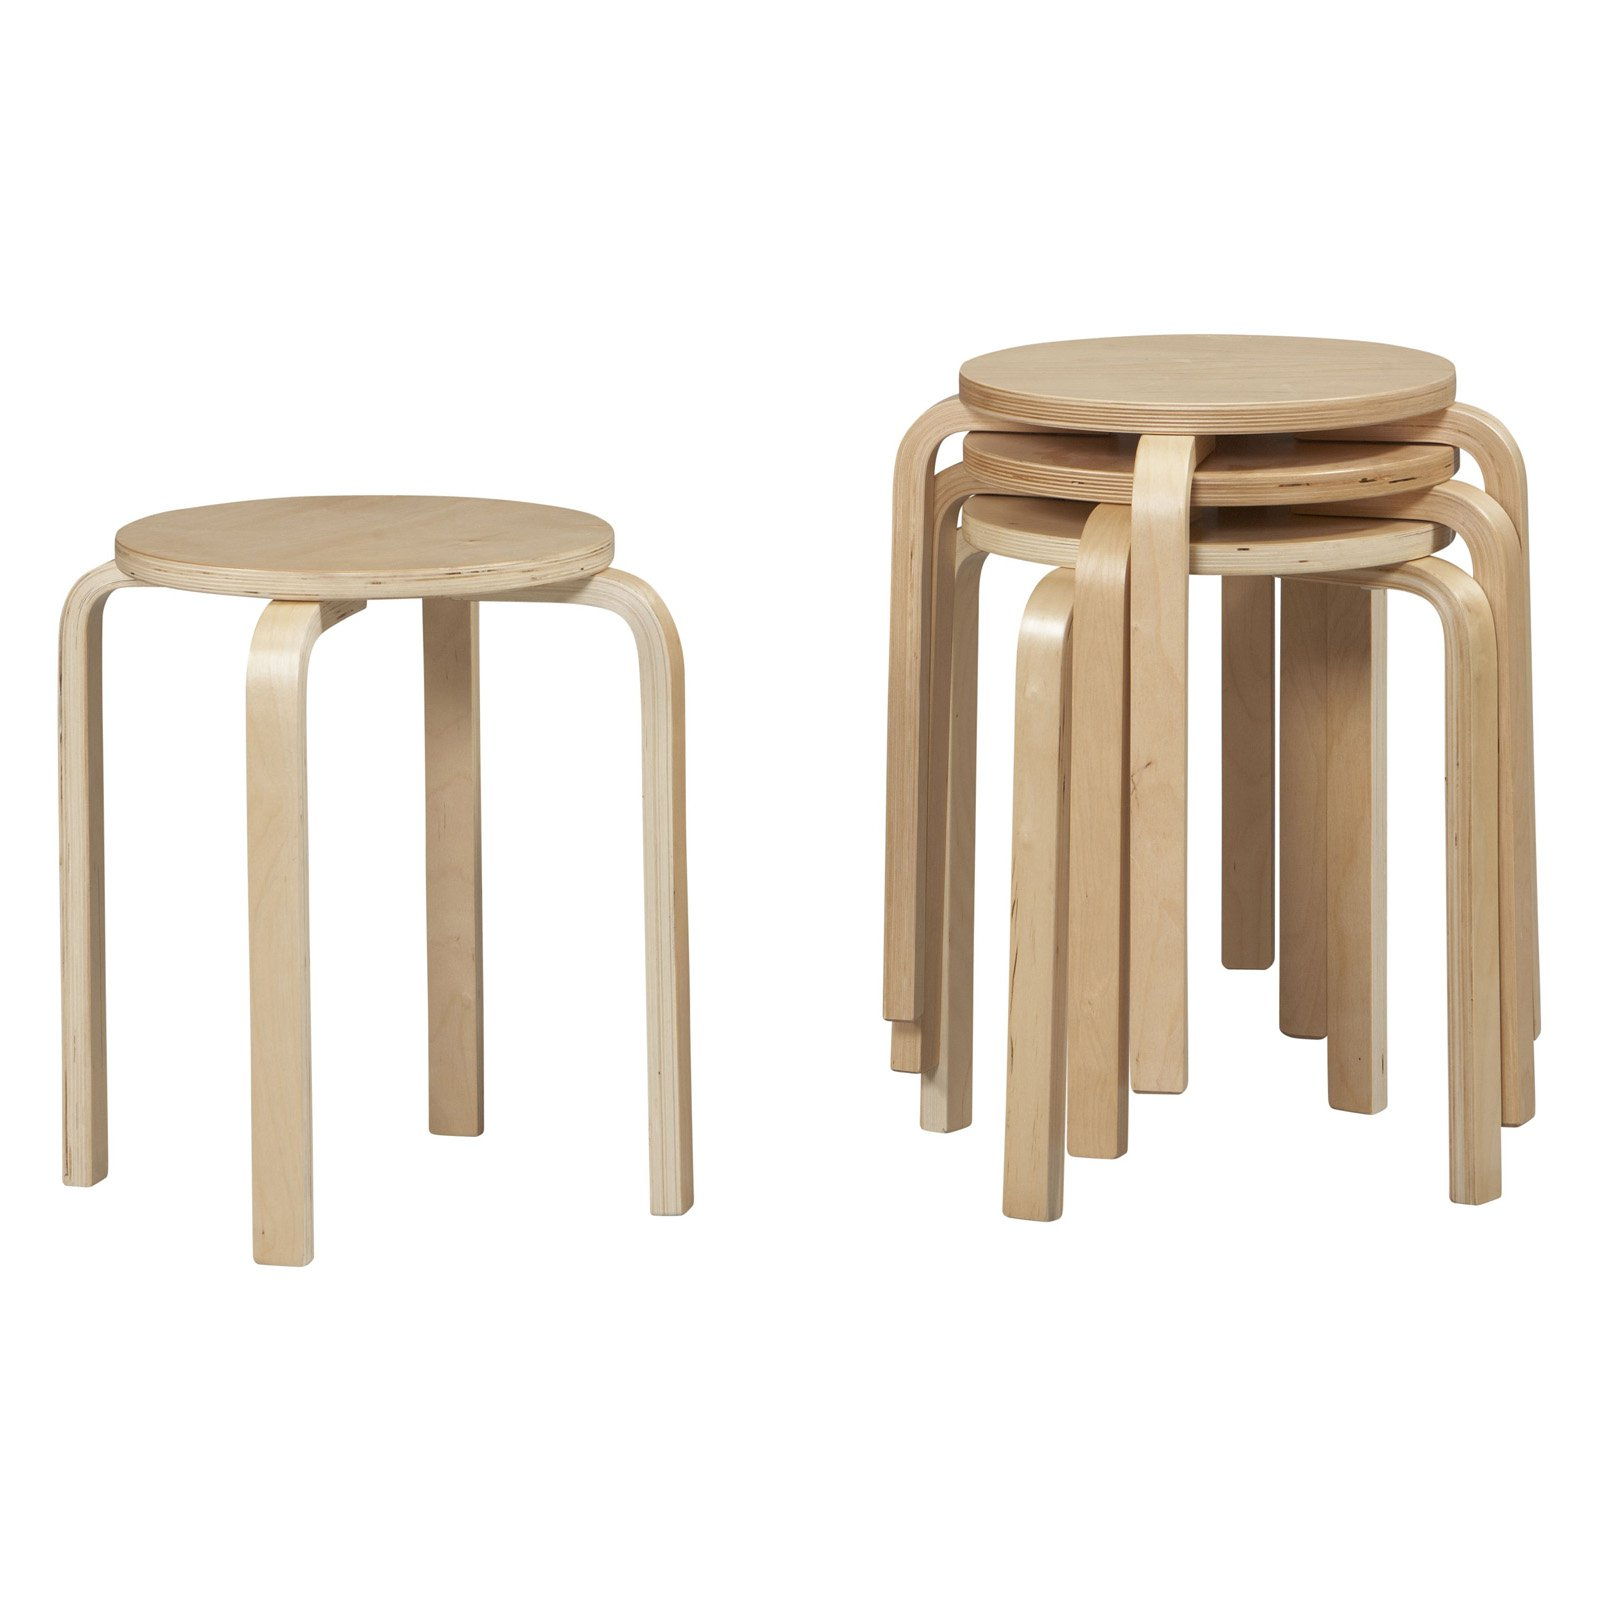 Linon Bentwood Stools Set of 4 Natural Finish 17 inch Seat Height  sc 1 st  Walmart & Linon Bentwood Stools Set of 4 Natural Finish 17 inch Seat ... islam-shia.org